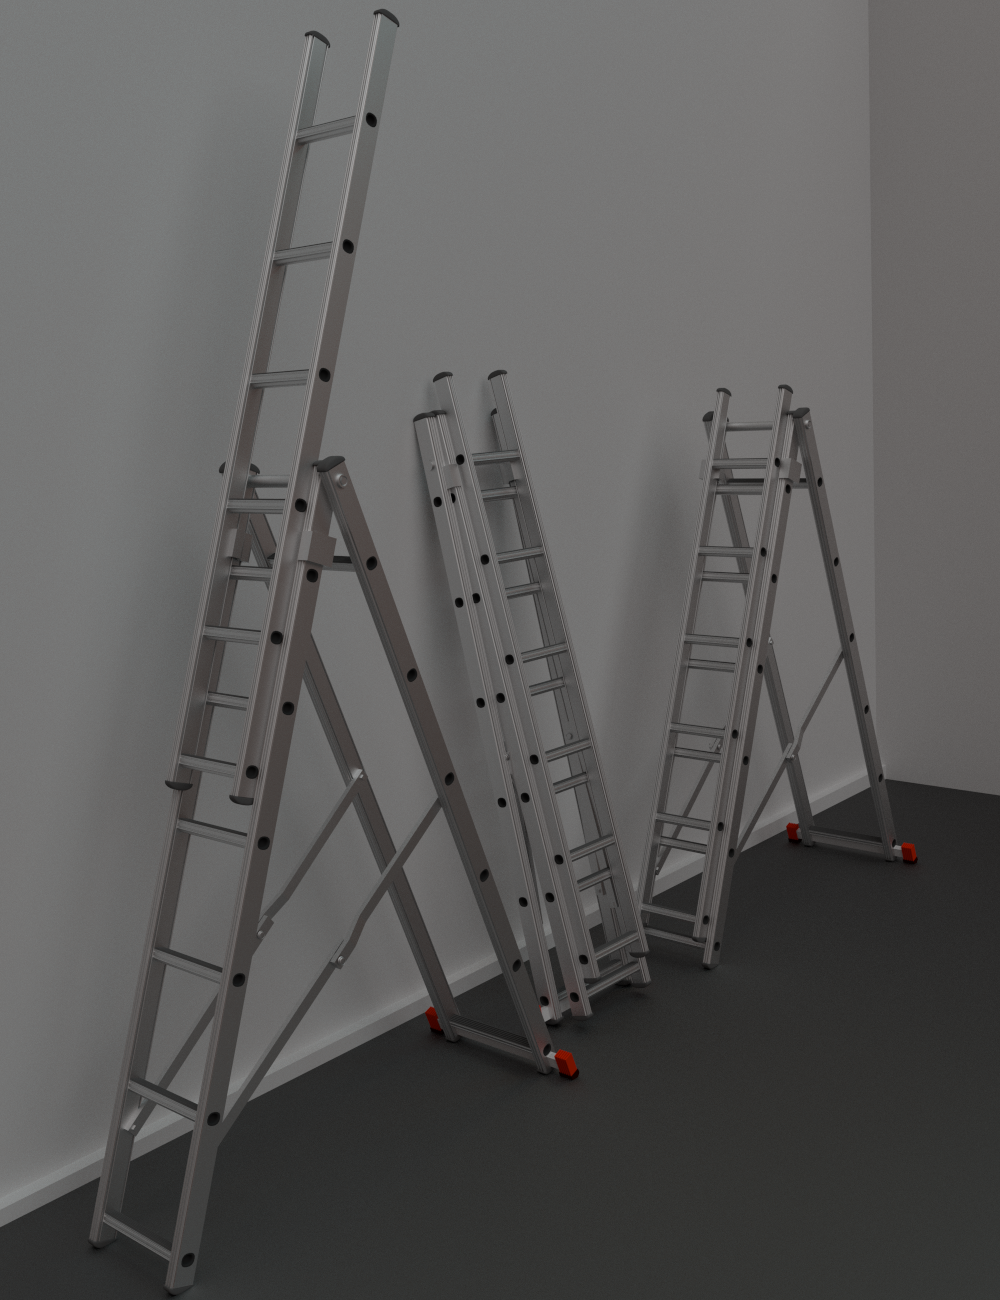 http://fc08.deviantart.net/fs71/f/2012/084/b/b/ladder__speed_modeling_contests_by_dennish2010-d4txlcb.png